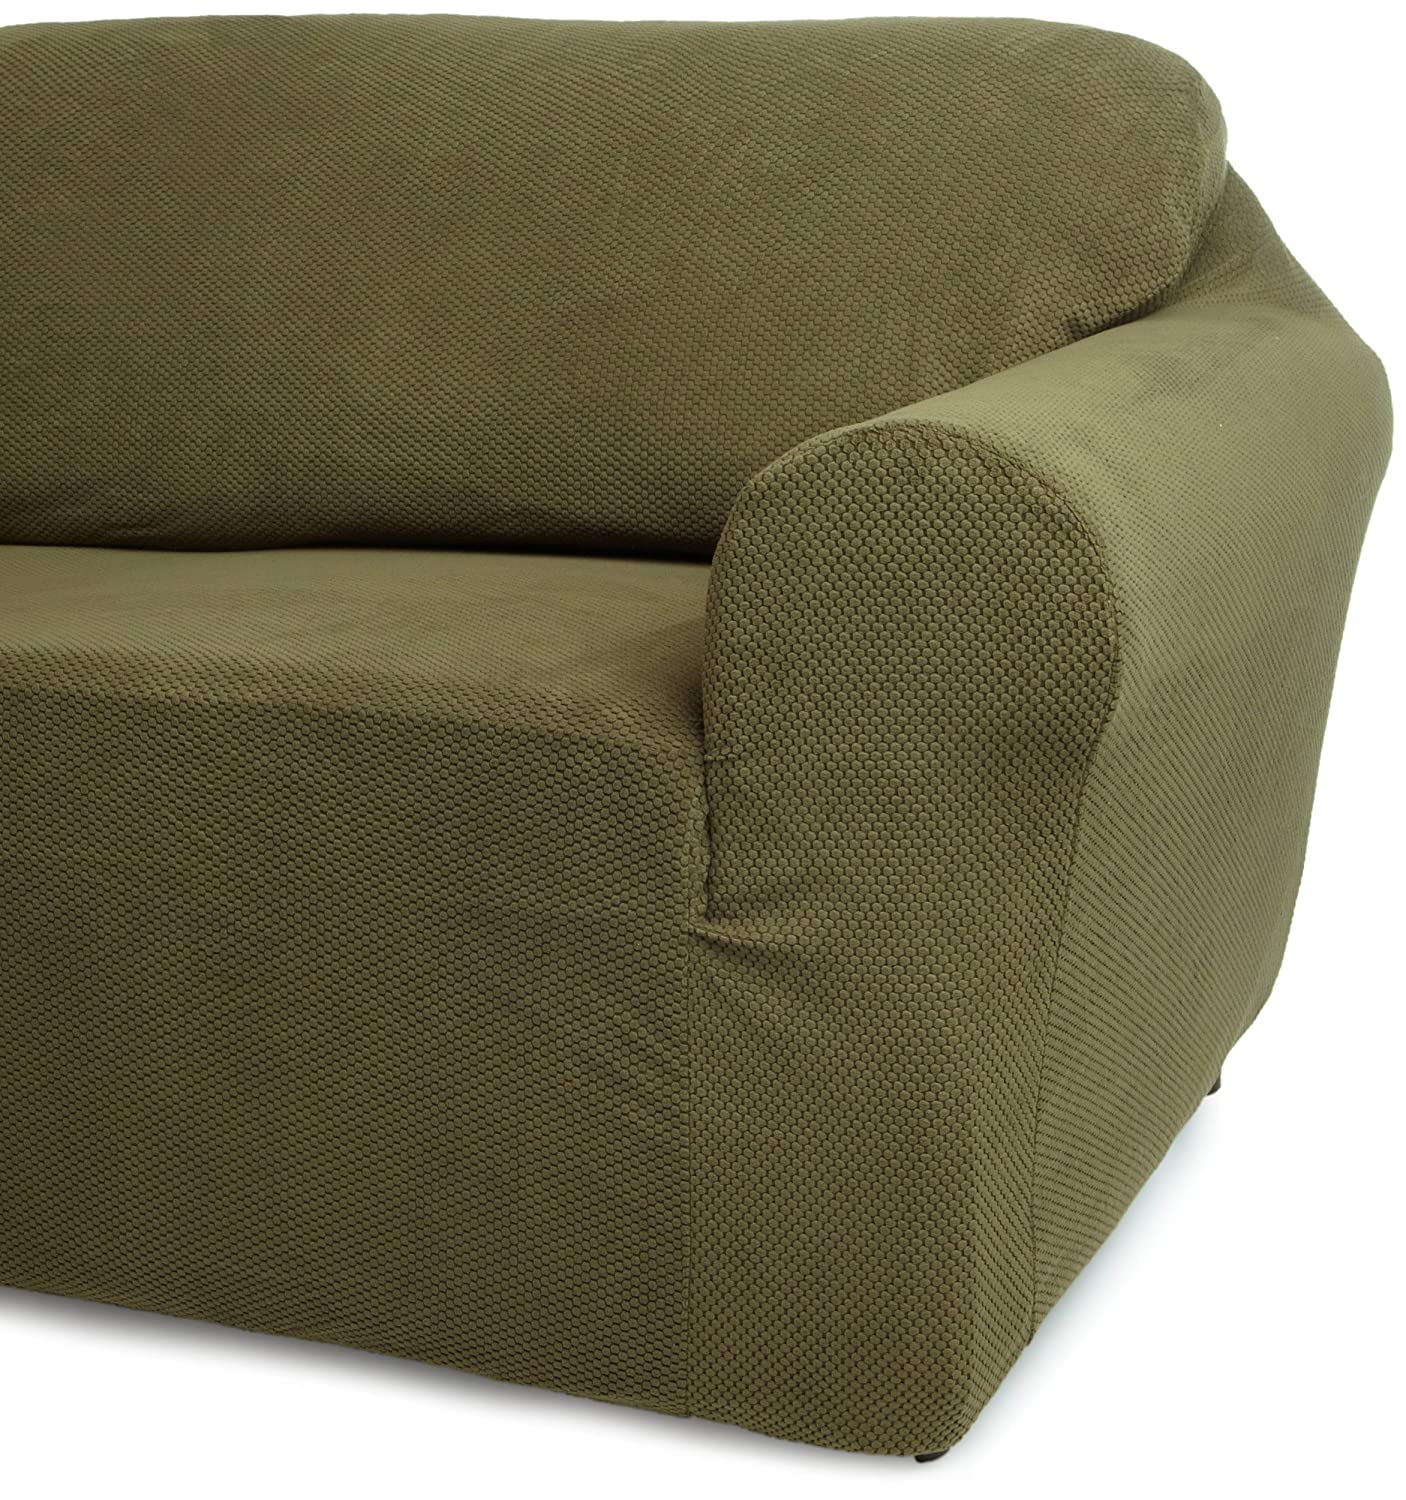 Amazon Classic SlipCovers 78 96 Inch Sofa Cover Olive Green